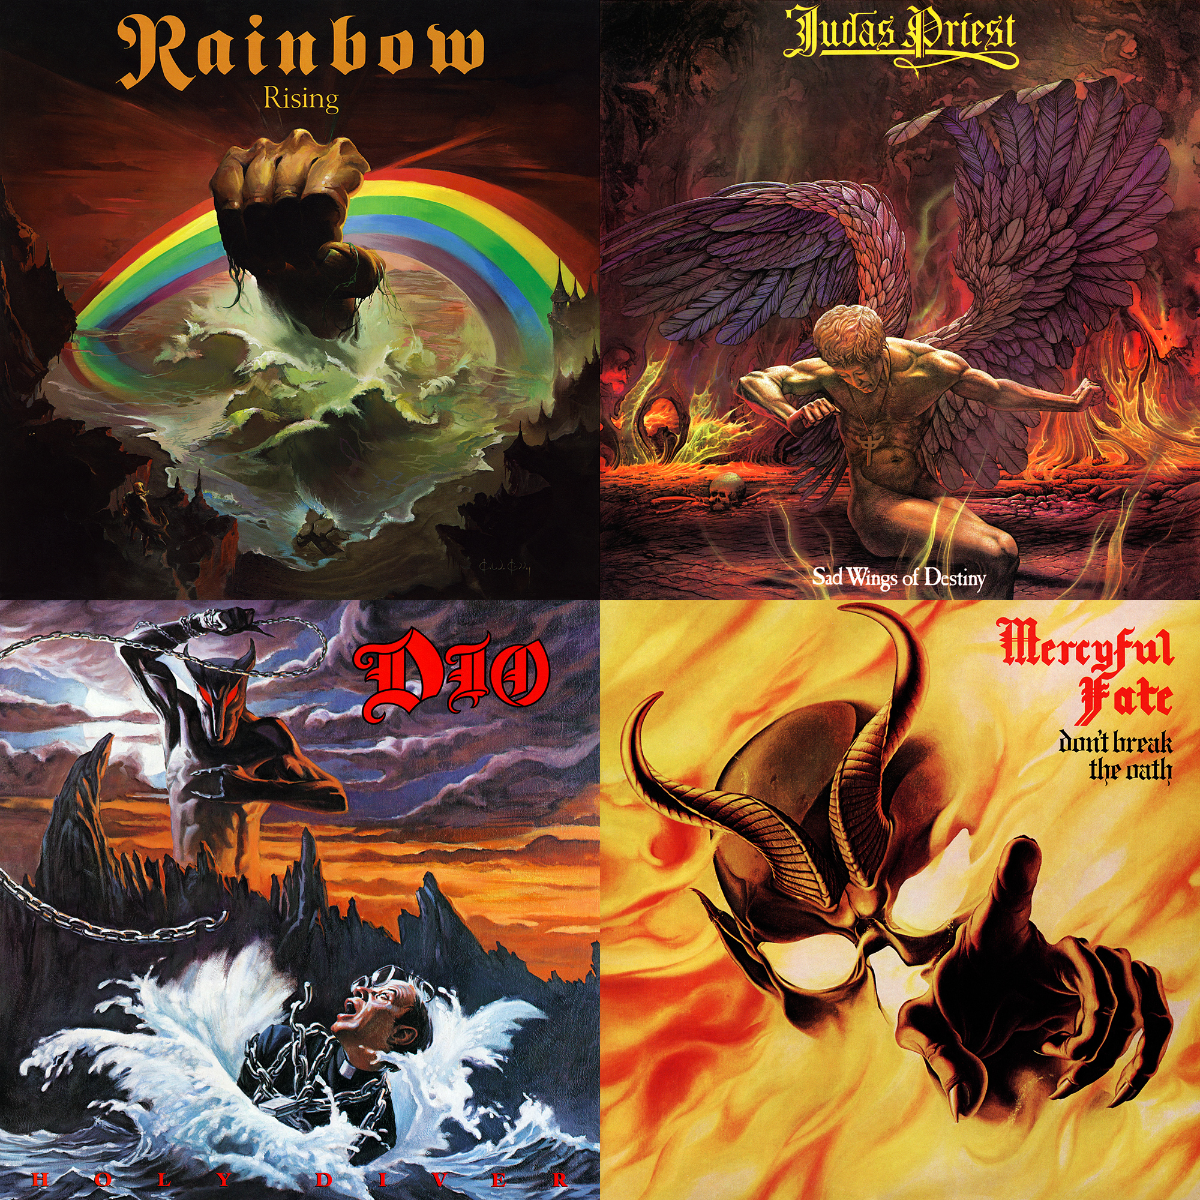 Clockwise from top-left: Rising by Rainbow (1976); Sad Wings of Destiny by Judas Priest (1976); Don't Break the Oath by Mercyful Fate (1984); and Holy Diver by Dio (1983).